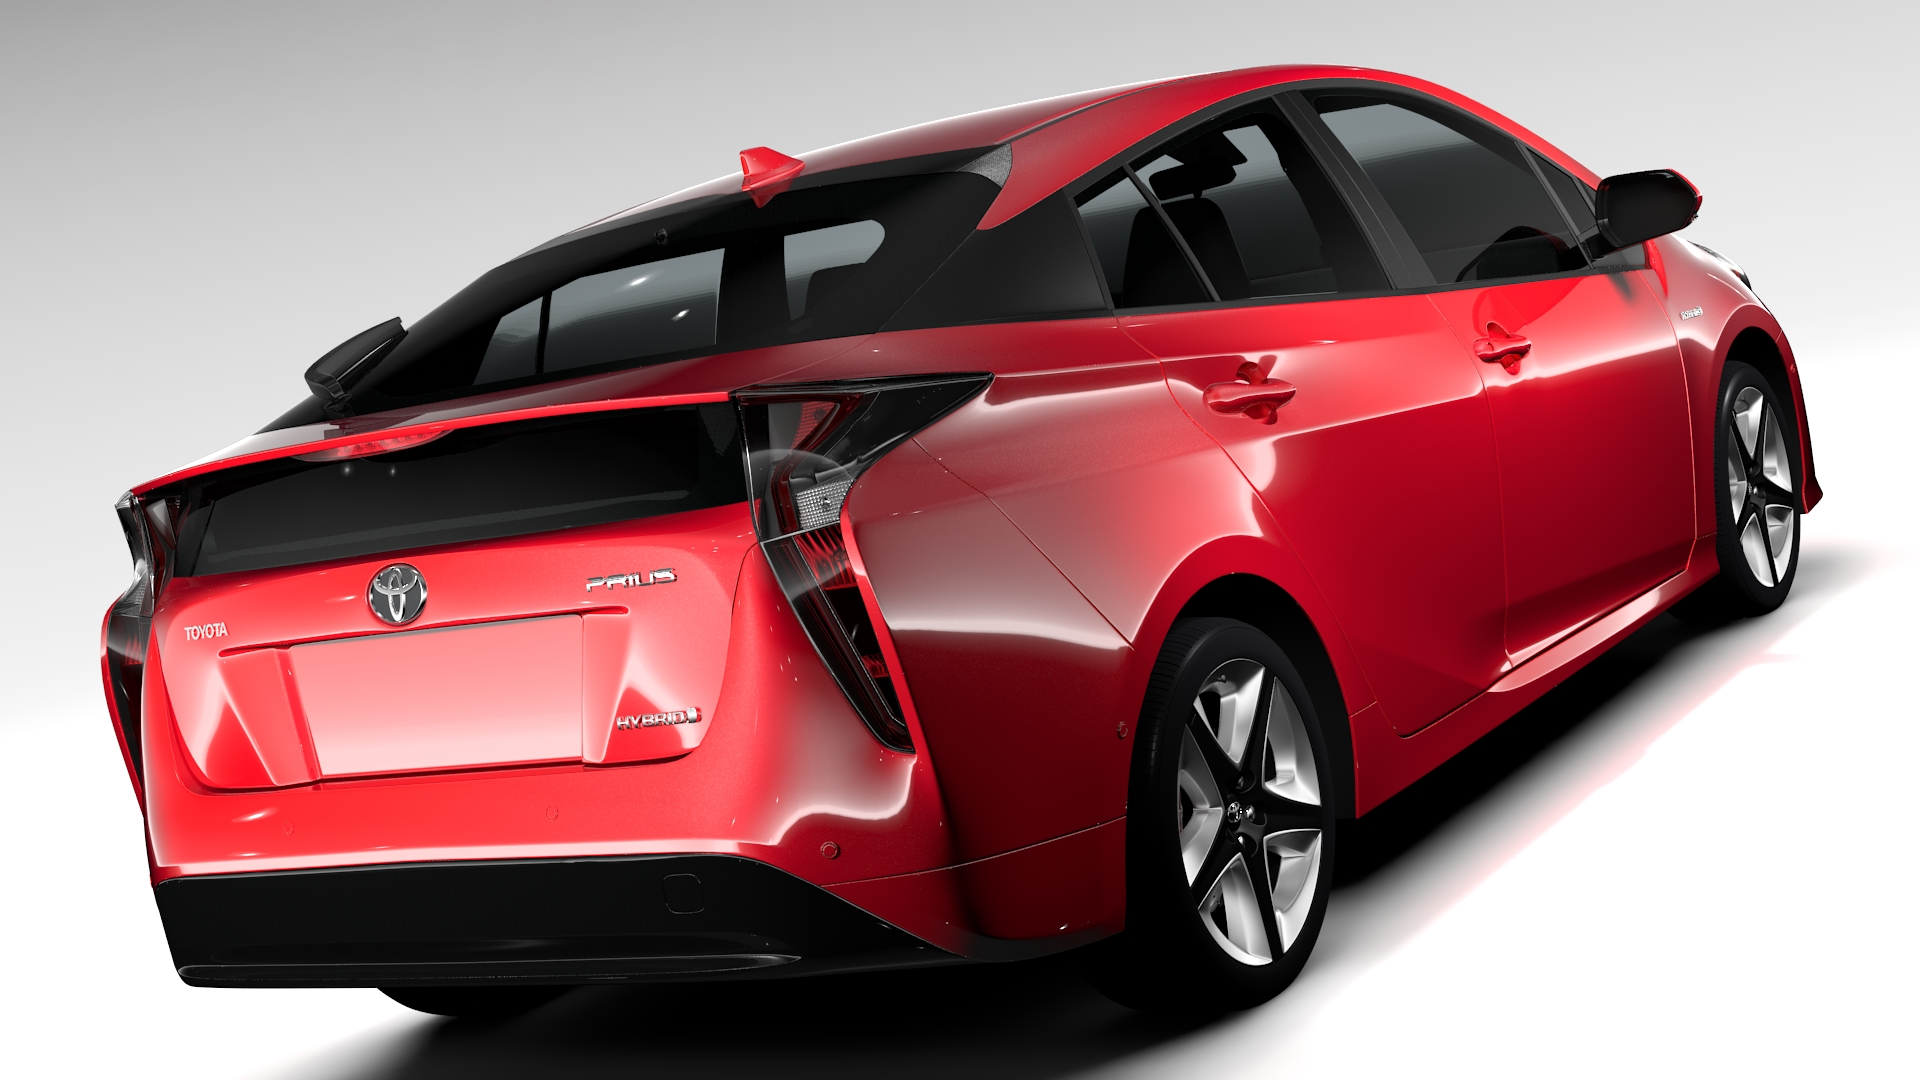 toyota prius 2016 3d model buy toyota prius 2016 3d model flatpyramid. Black Bedroom Furniture Sets. Home Design Ideas